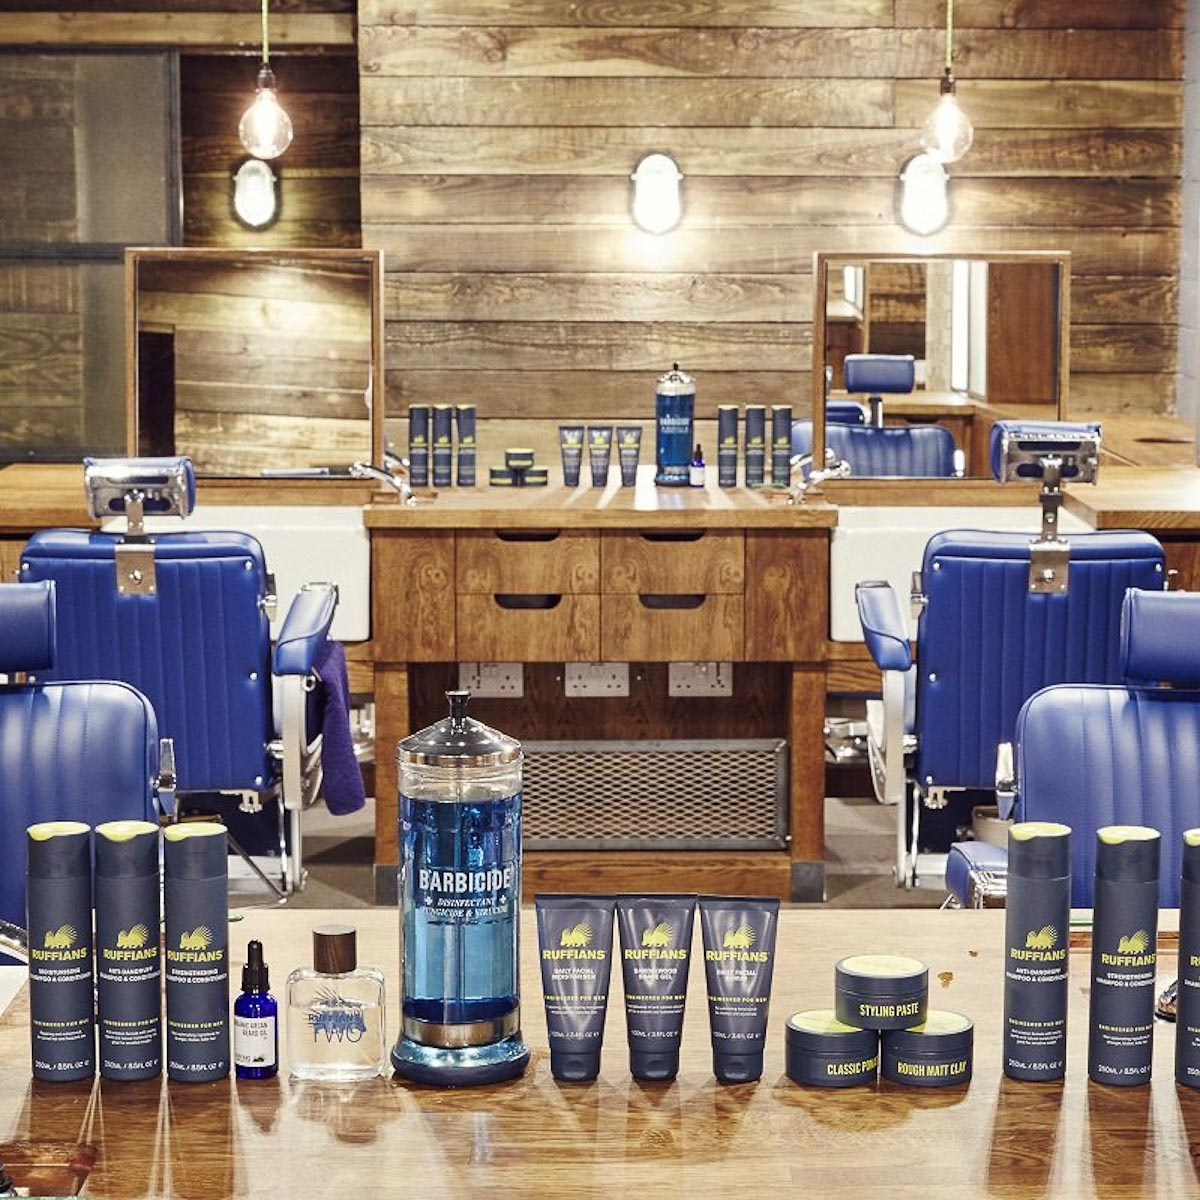 ruffians-london-best-barbershops-man-for-himself